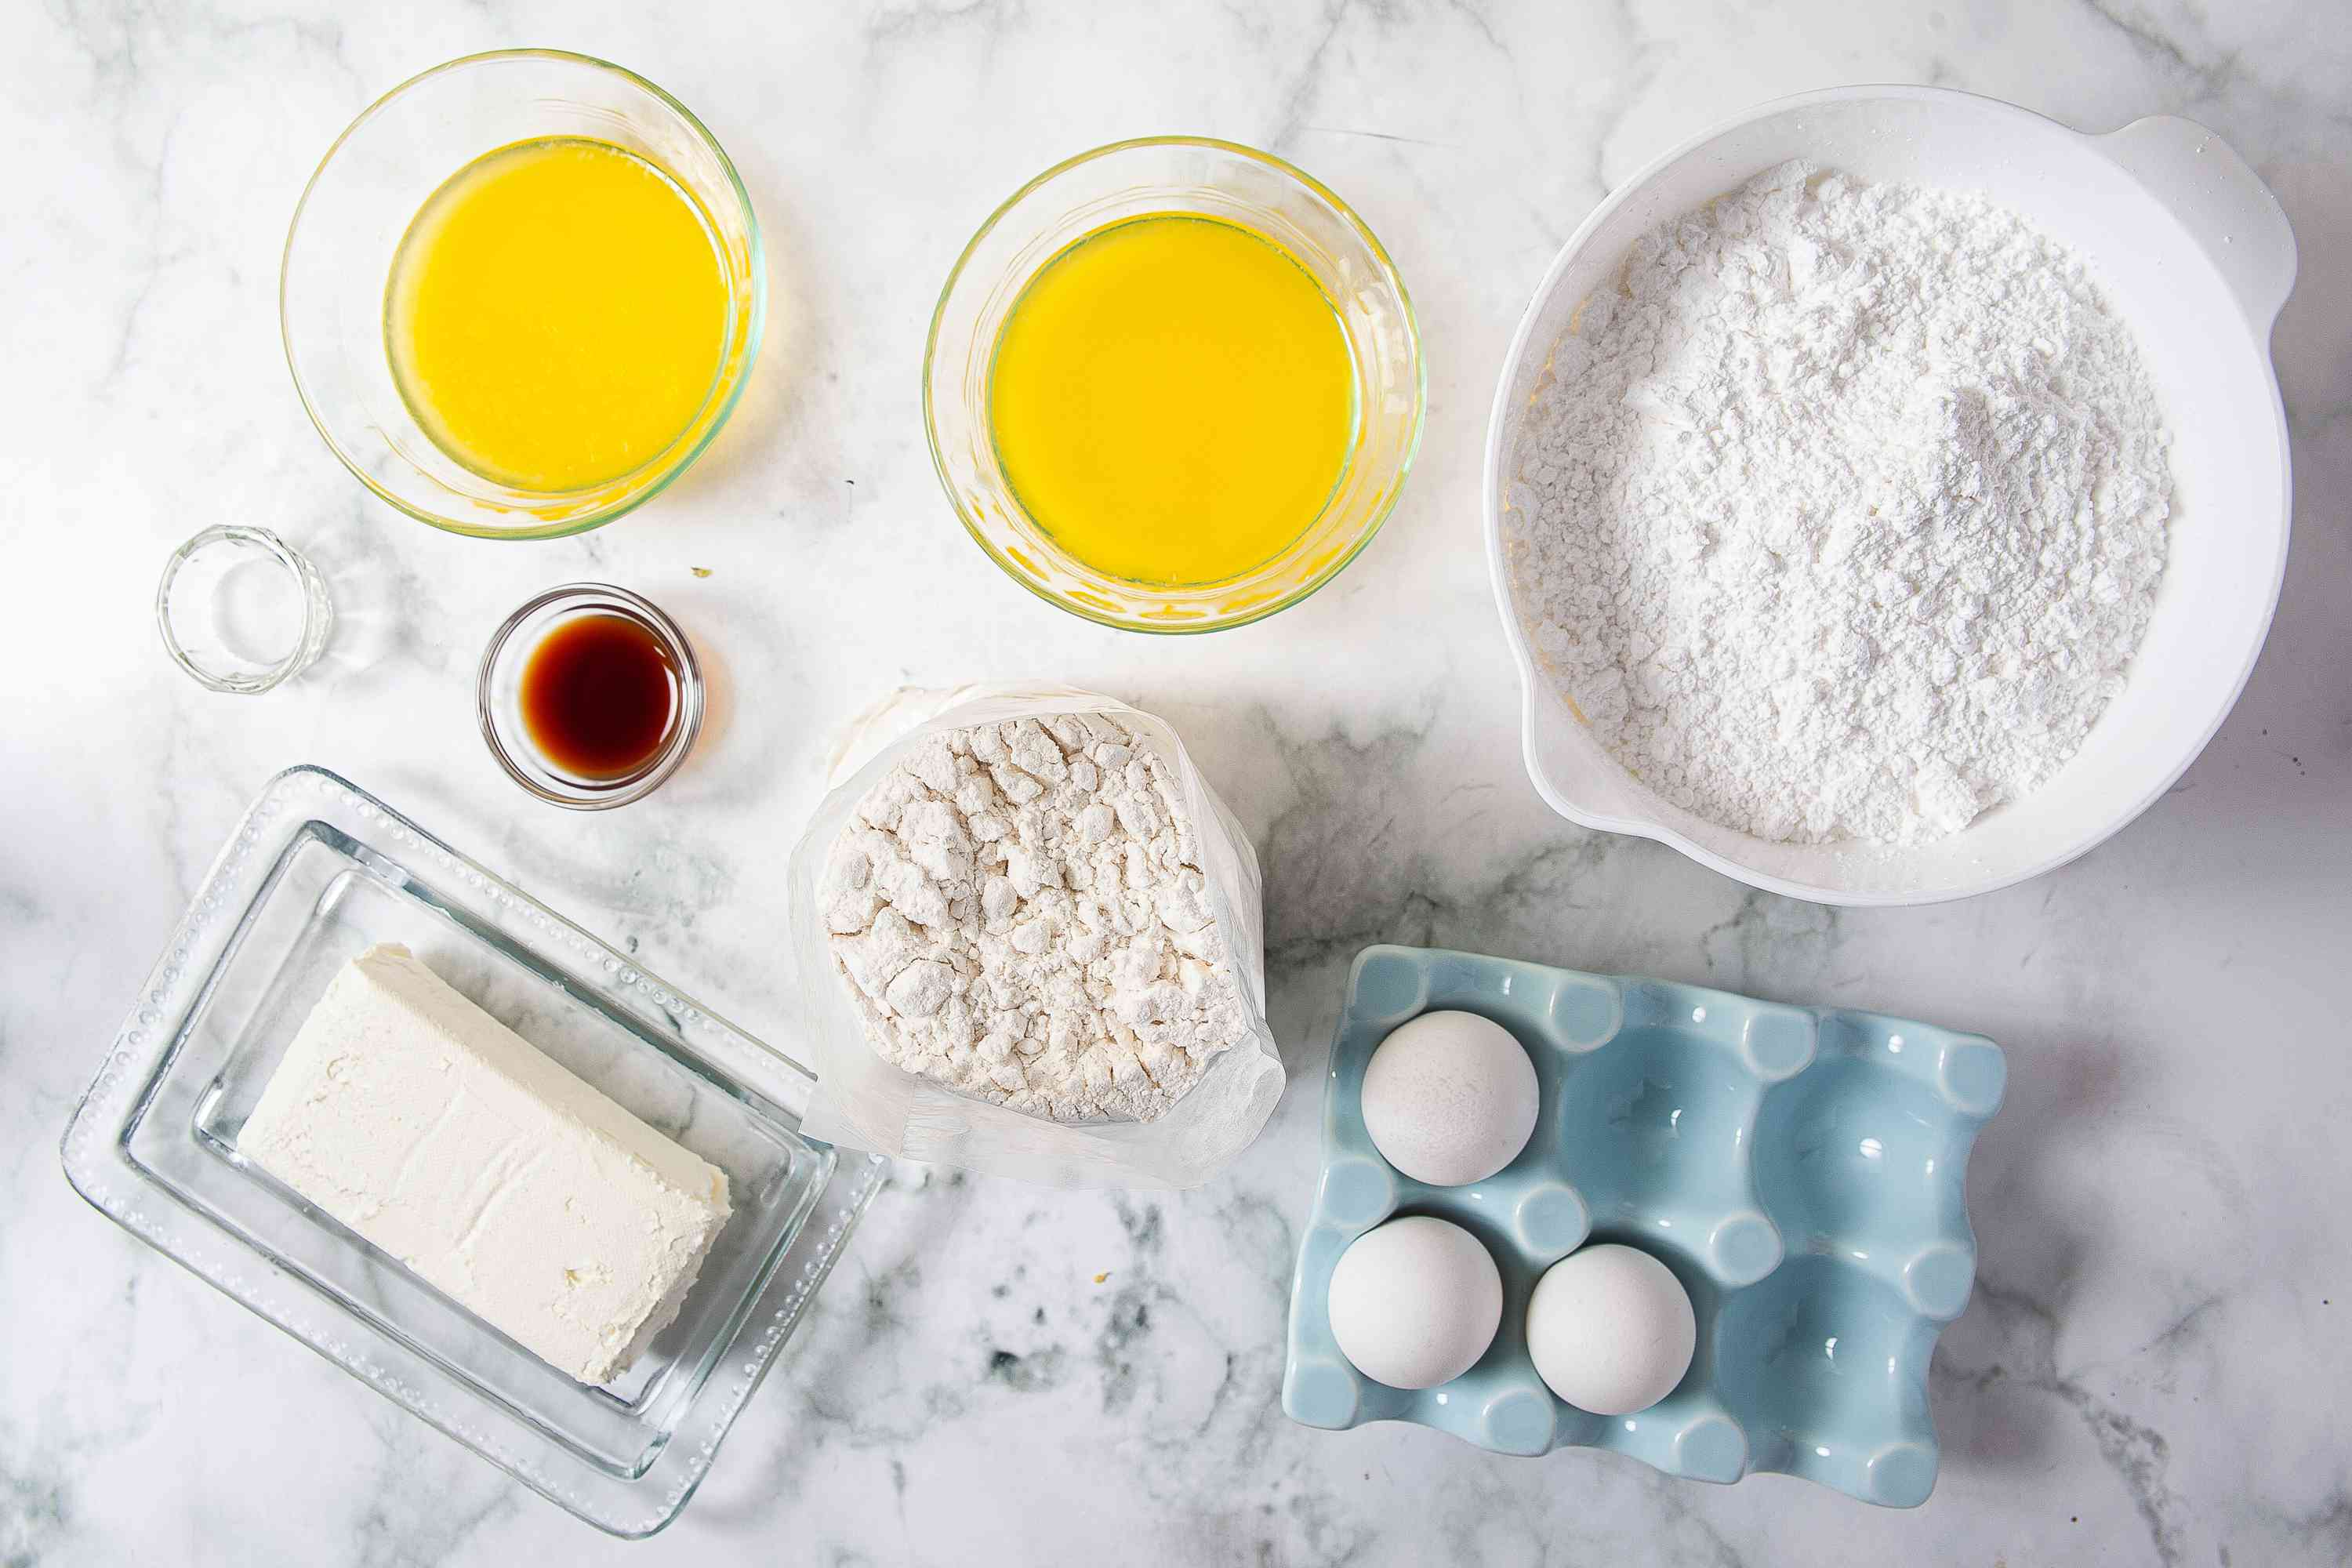 ingredients for Gooey Butter Cake